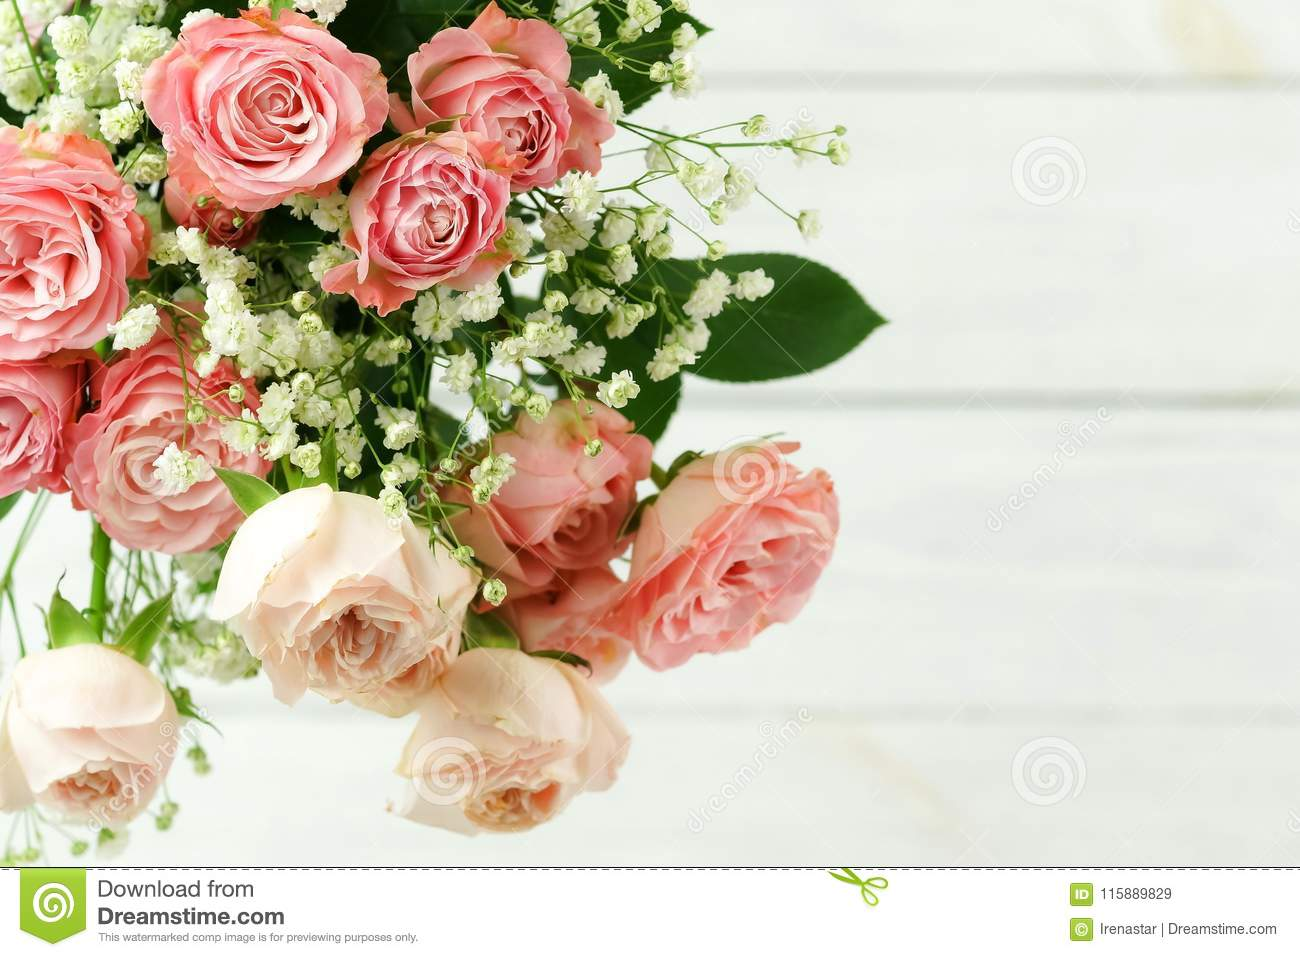 Flowers background. Bouquet of beautiful pink roses